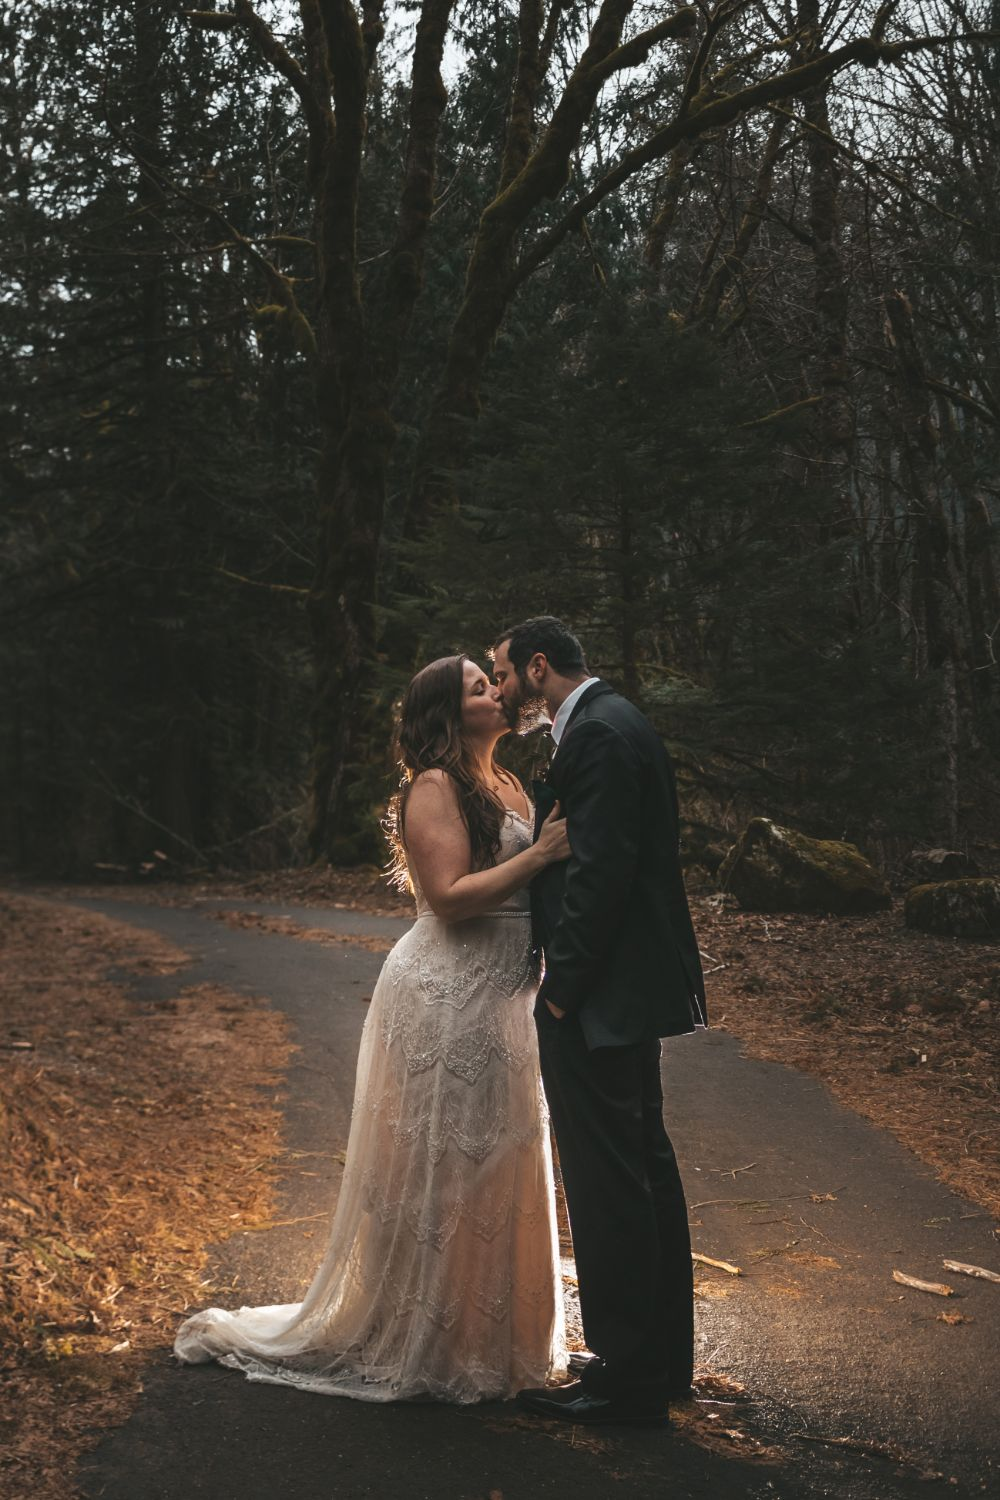 couple-lit-up-forest-kiss